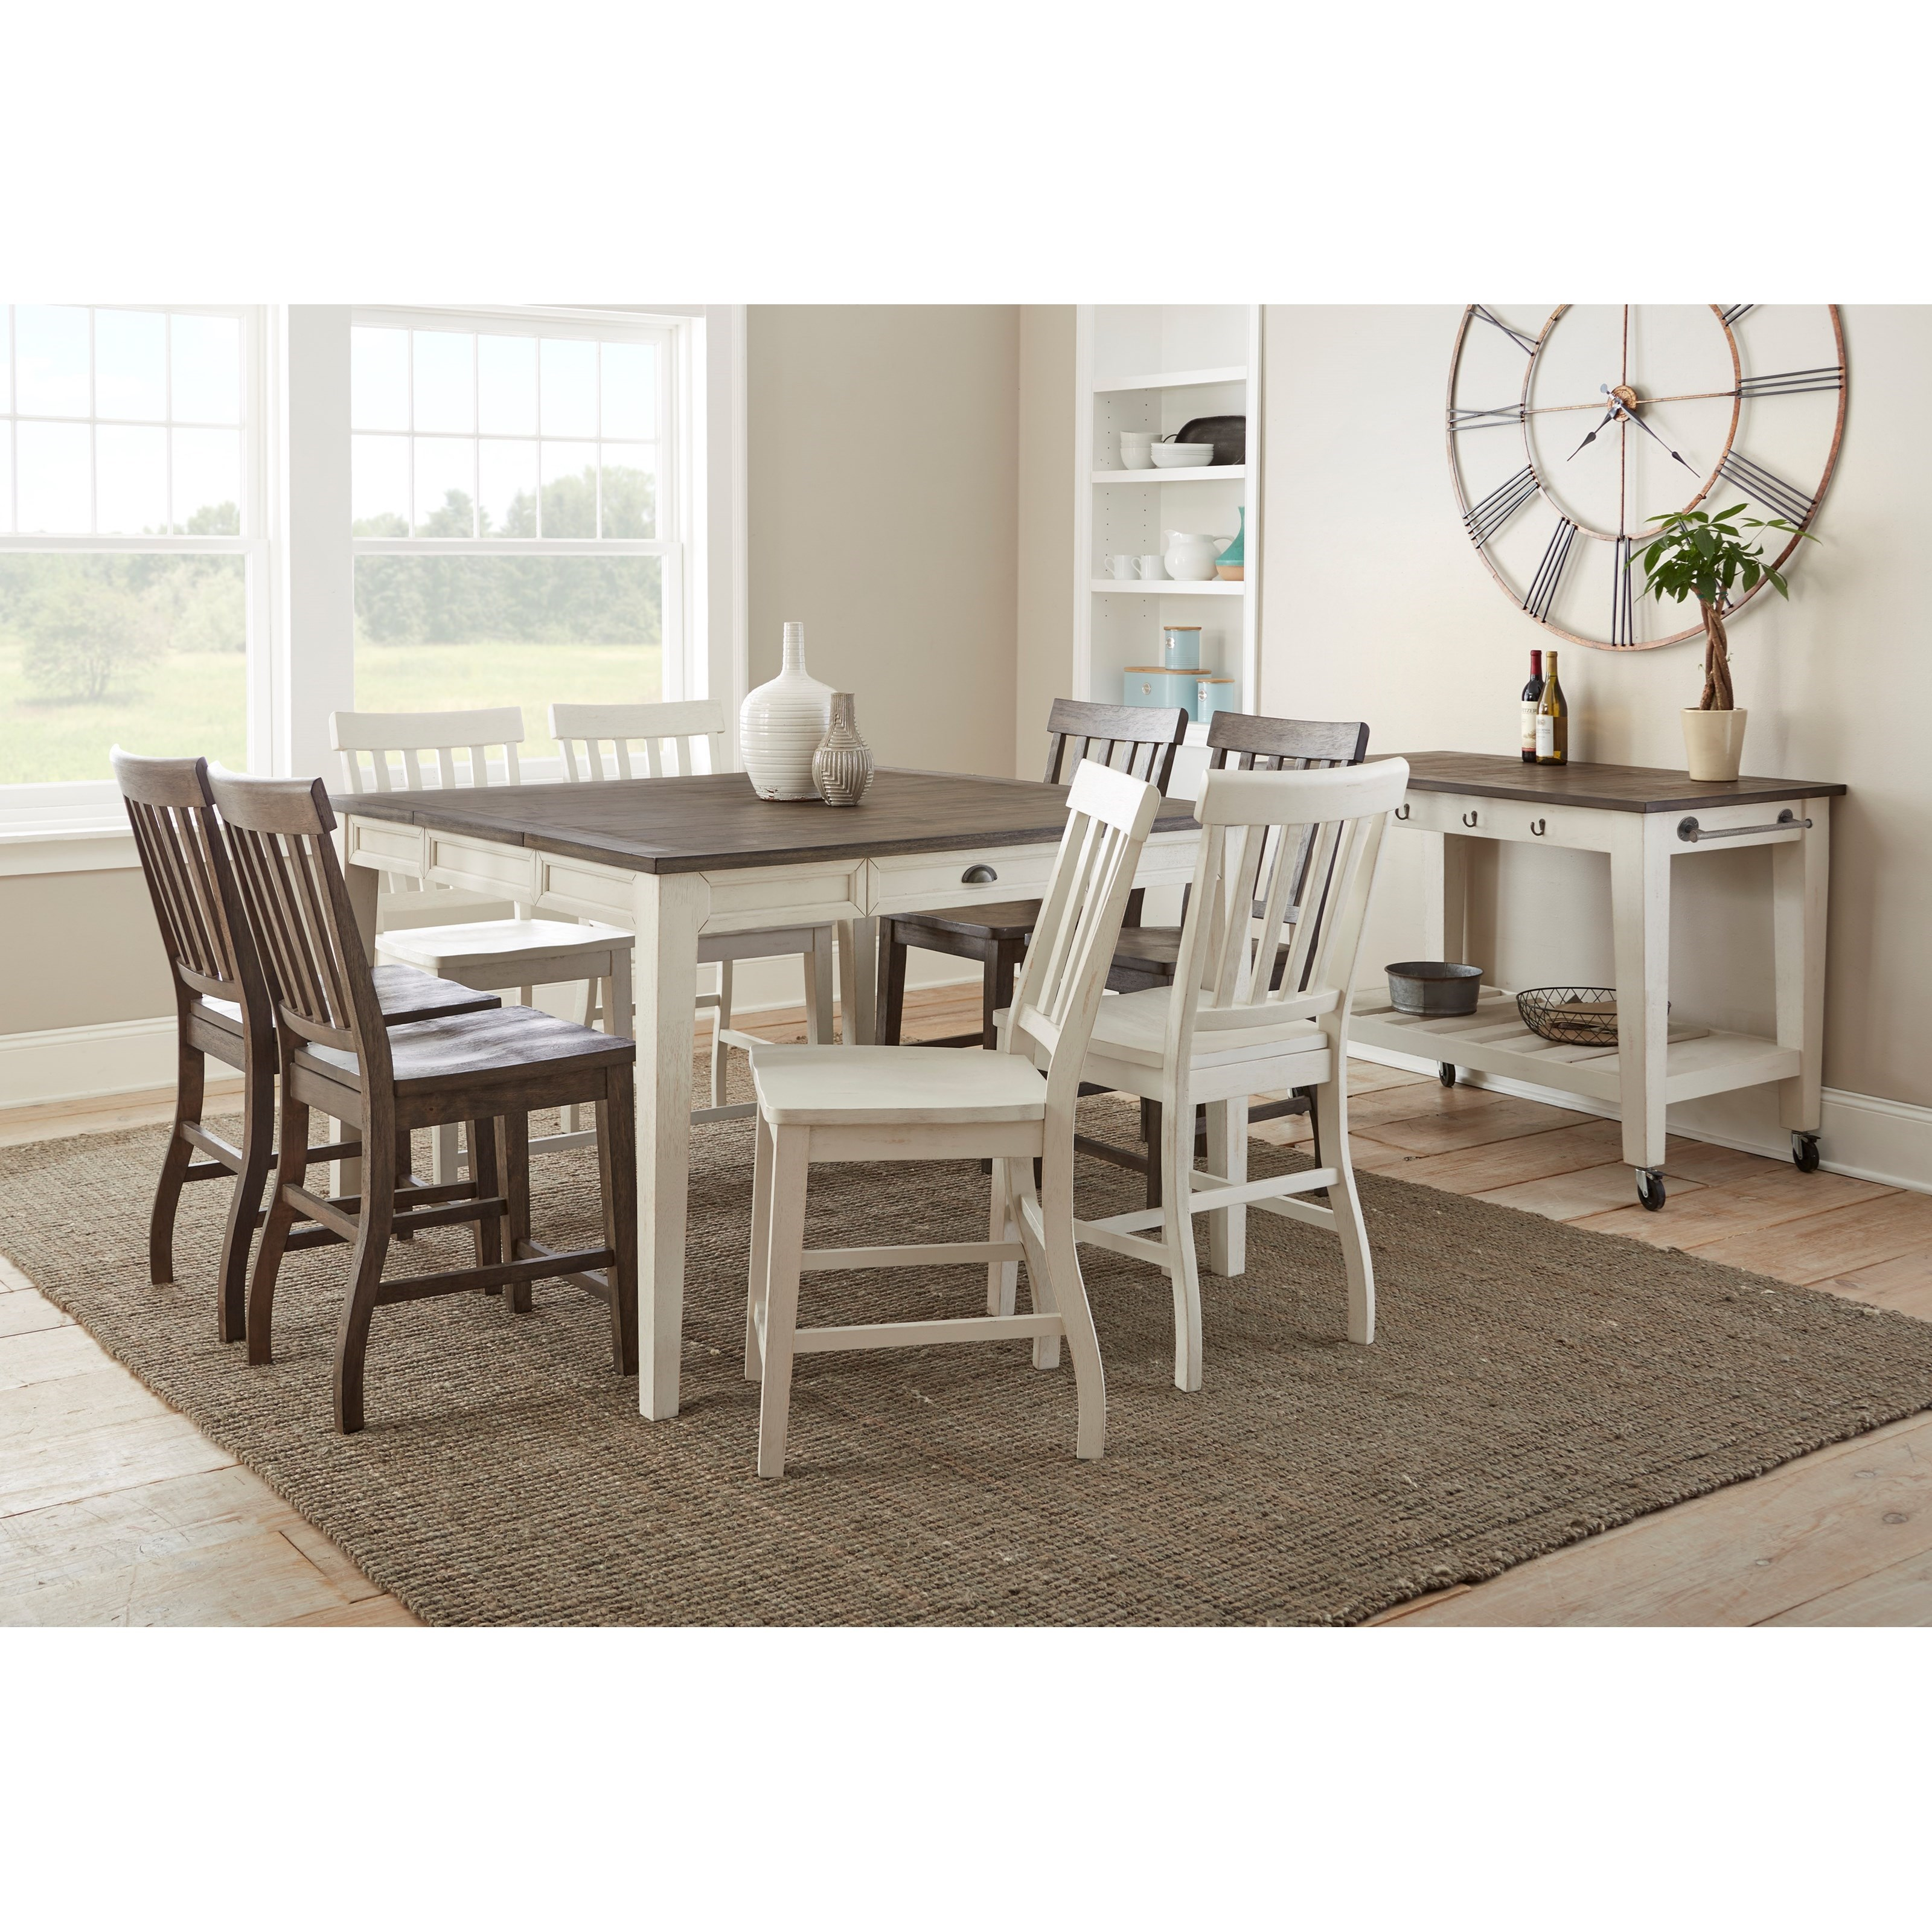 Cayla Casual Dining Room Group by Steve Silver at Northeast Factory Direct